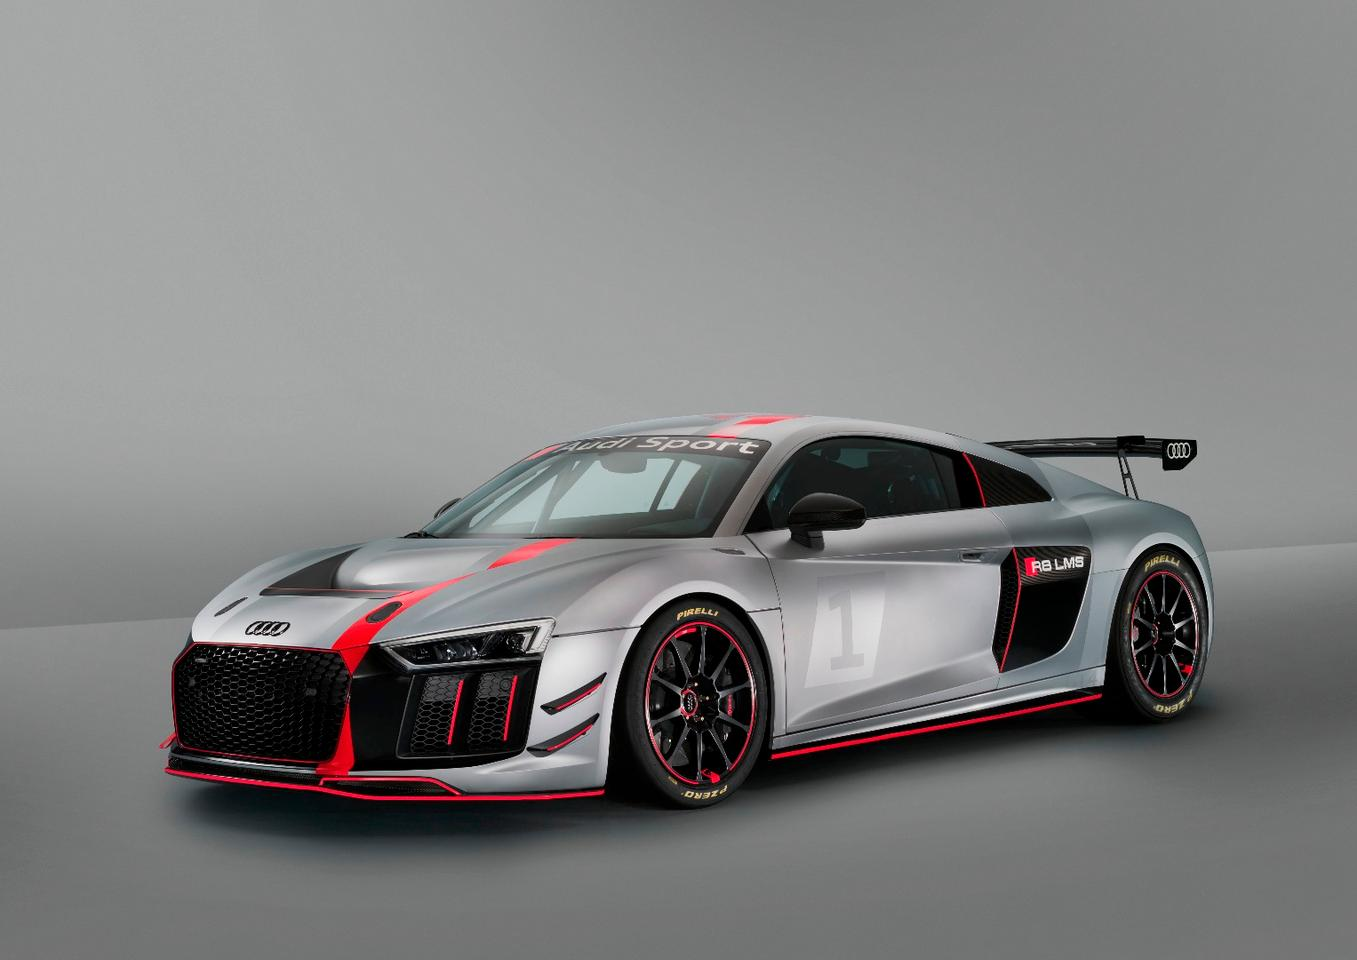 The GT4 LMSshares 60 percent of its parts with the road-going car